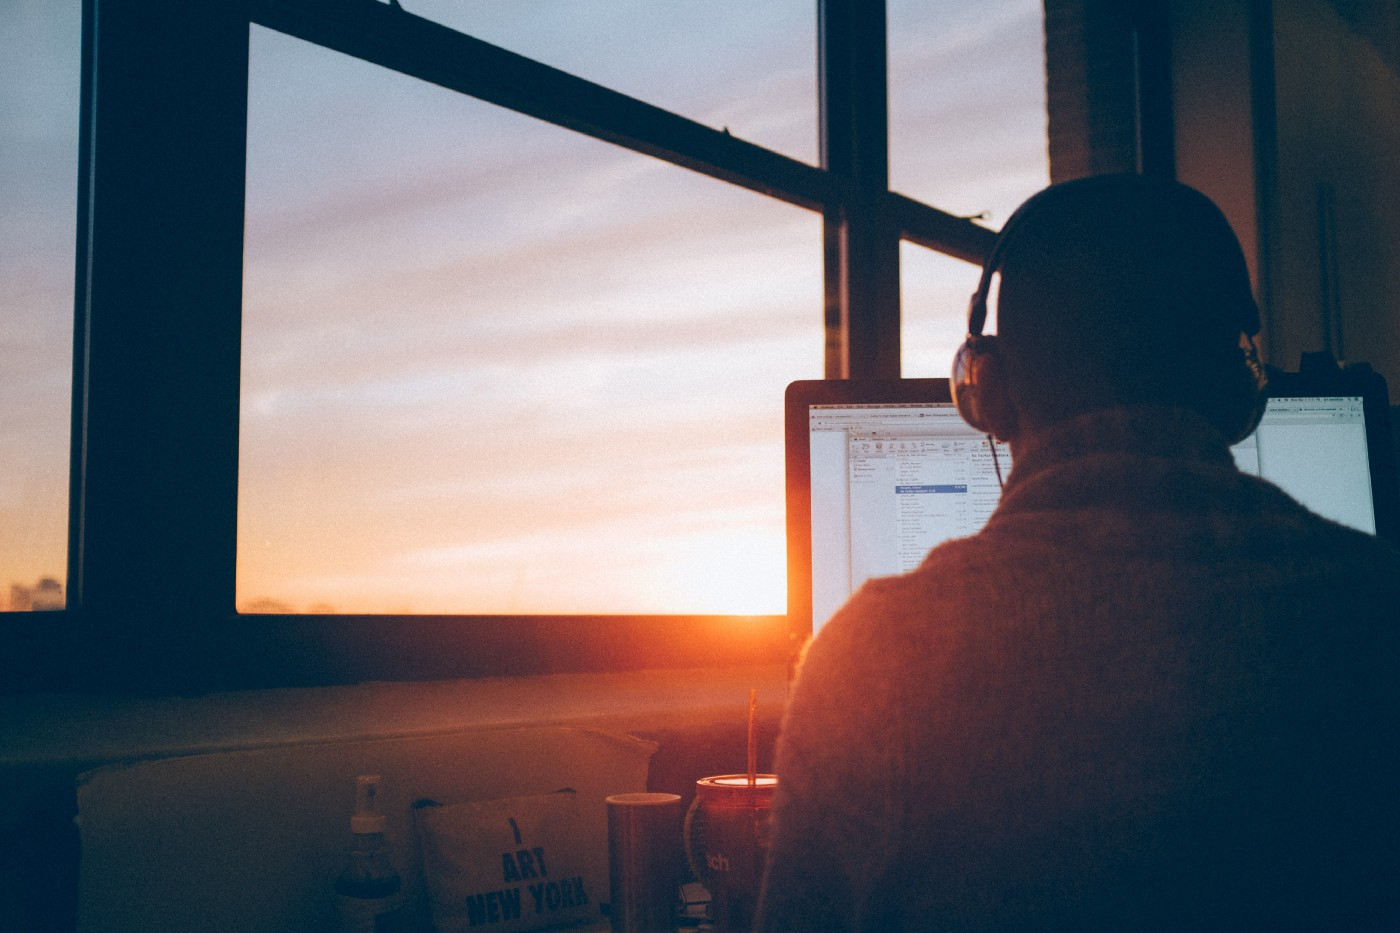 Man working on laptop at sunset in front of a large window